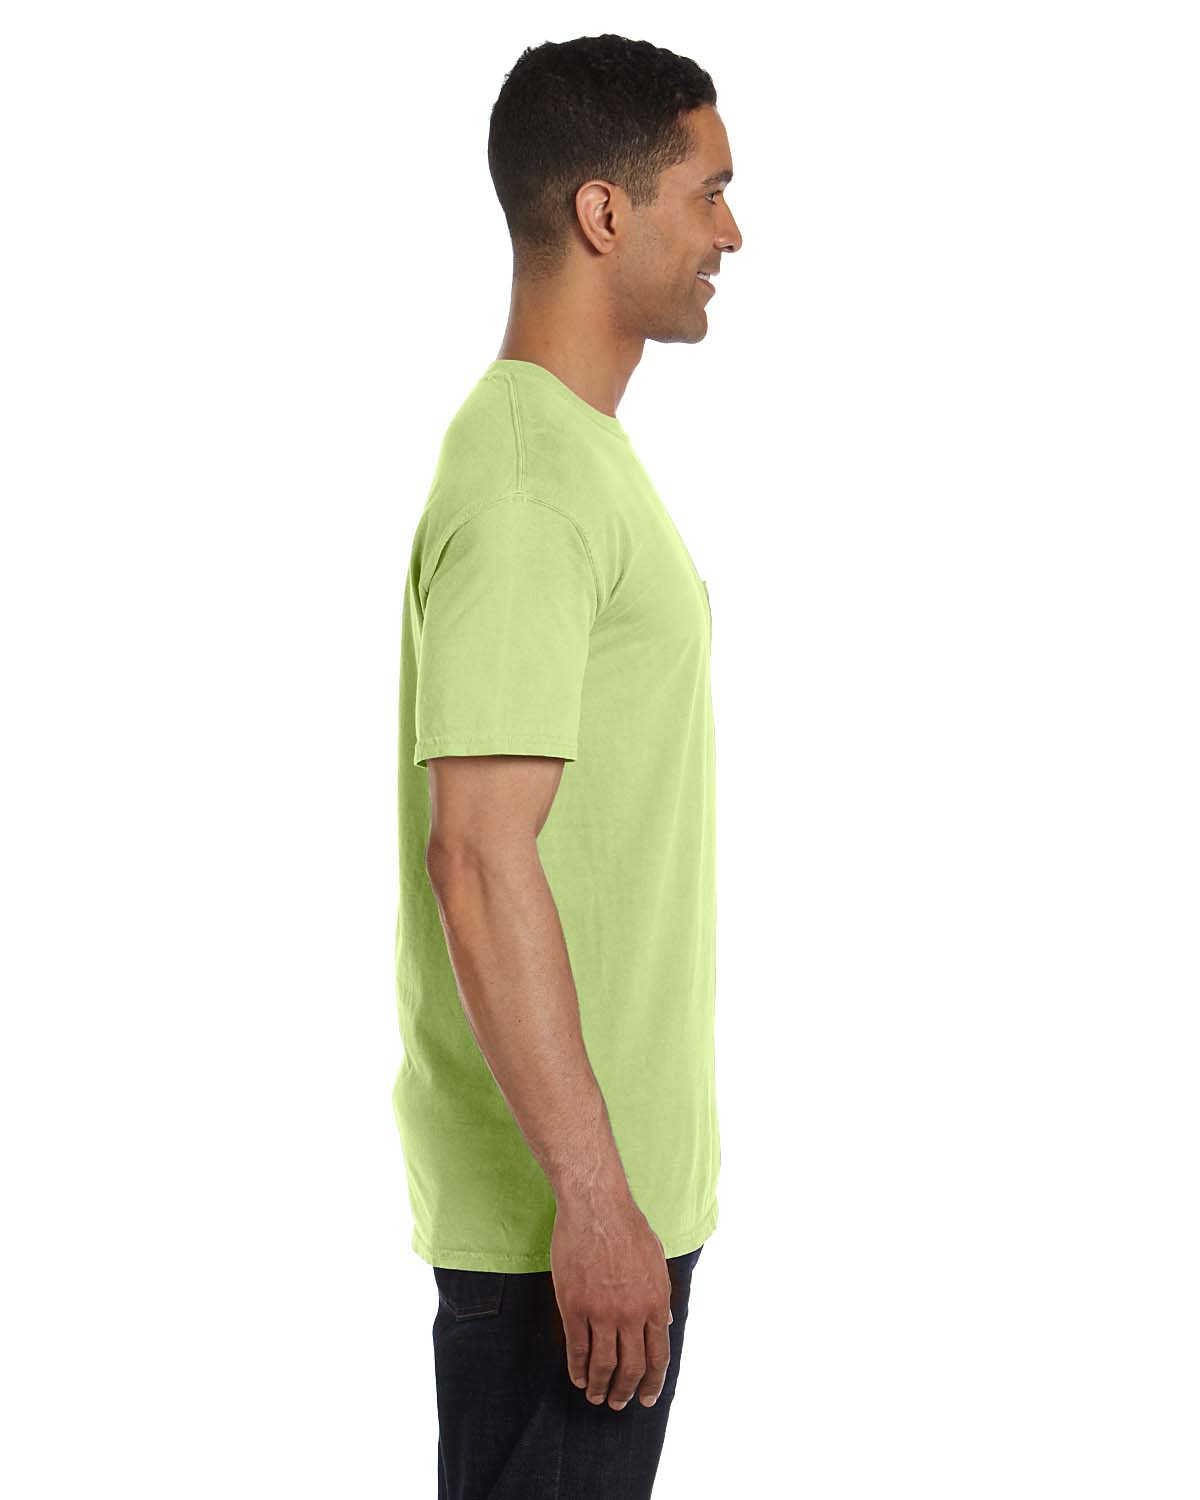 Comfort-Colors-Men-039-s-6-1-oz-Garment-Dyed-Pocket-T-Shirt-6030CC-S-3XL thumbnail 21